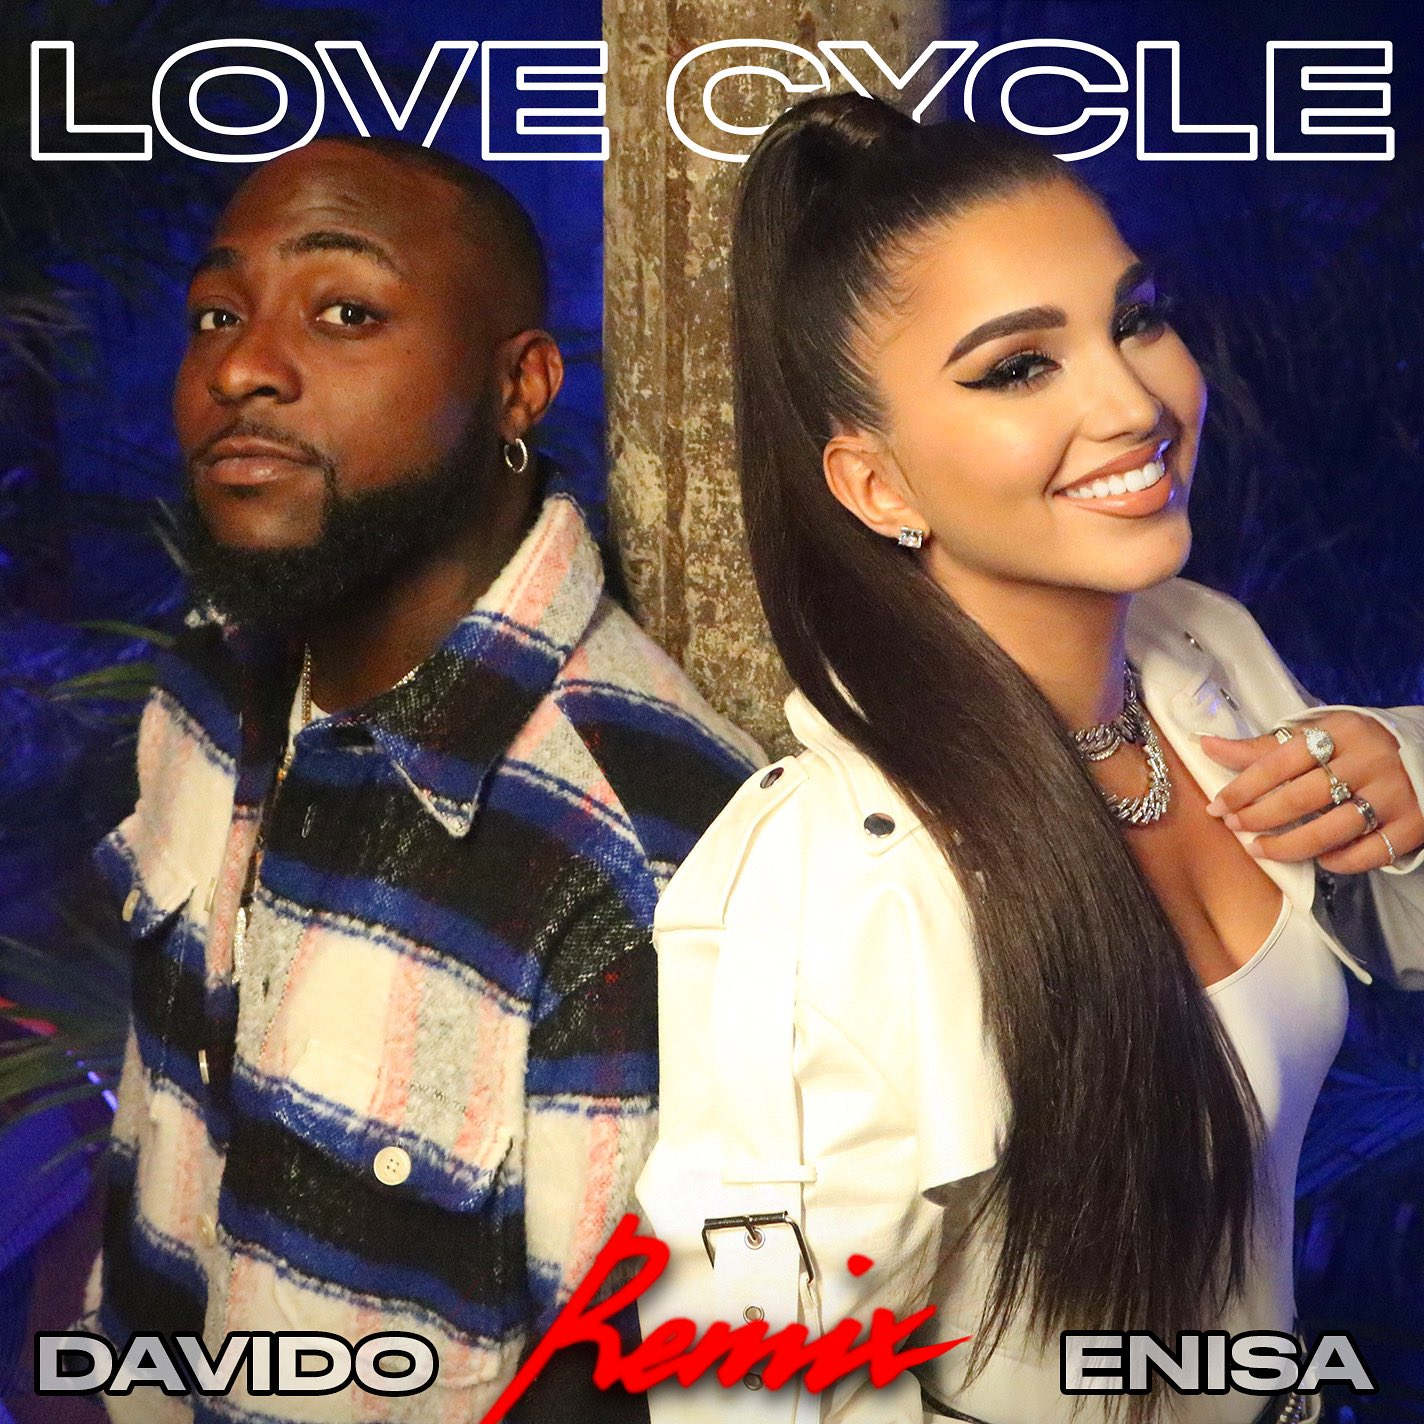 Love Cycle Remix by Enisa